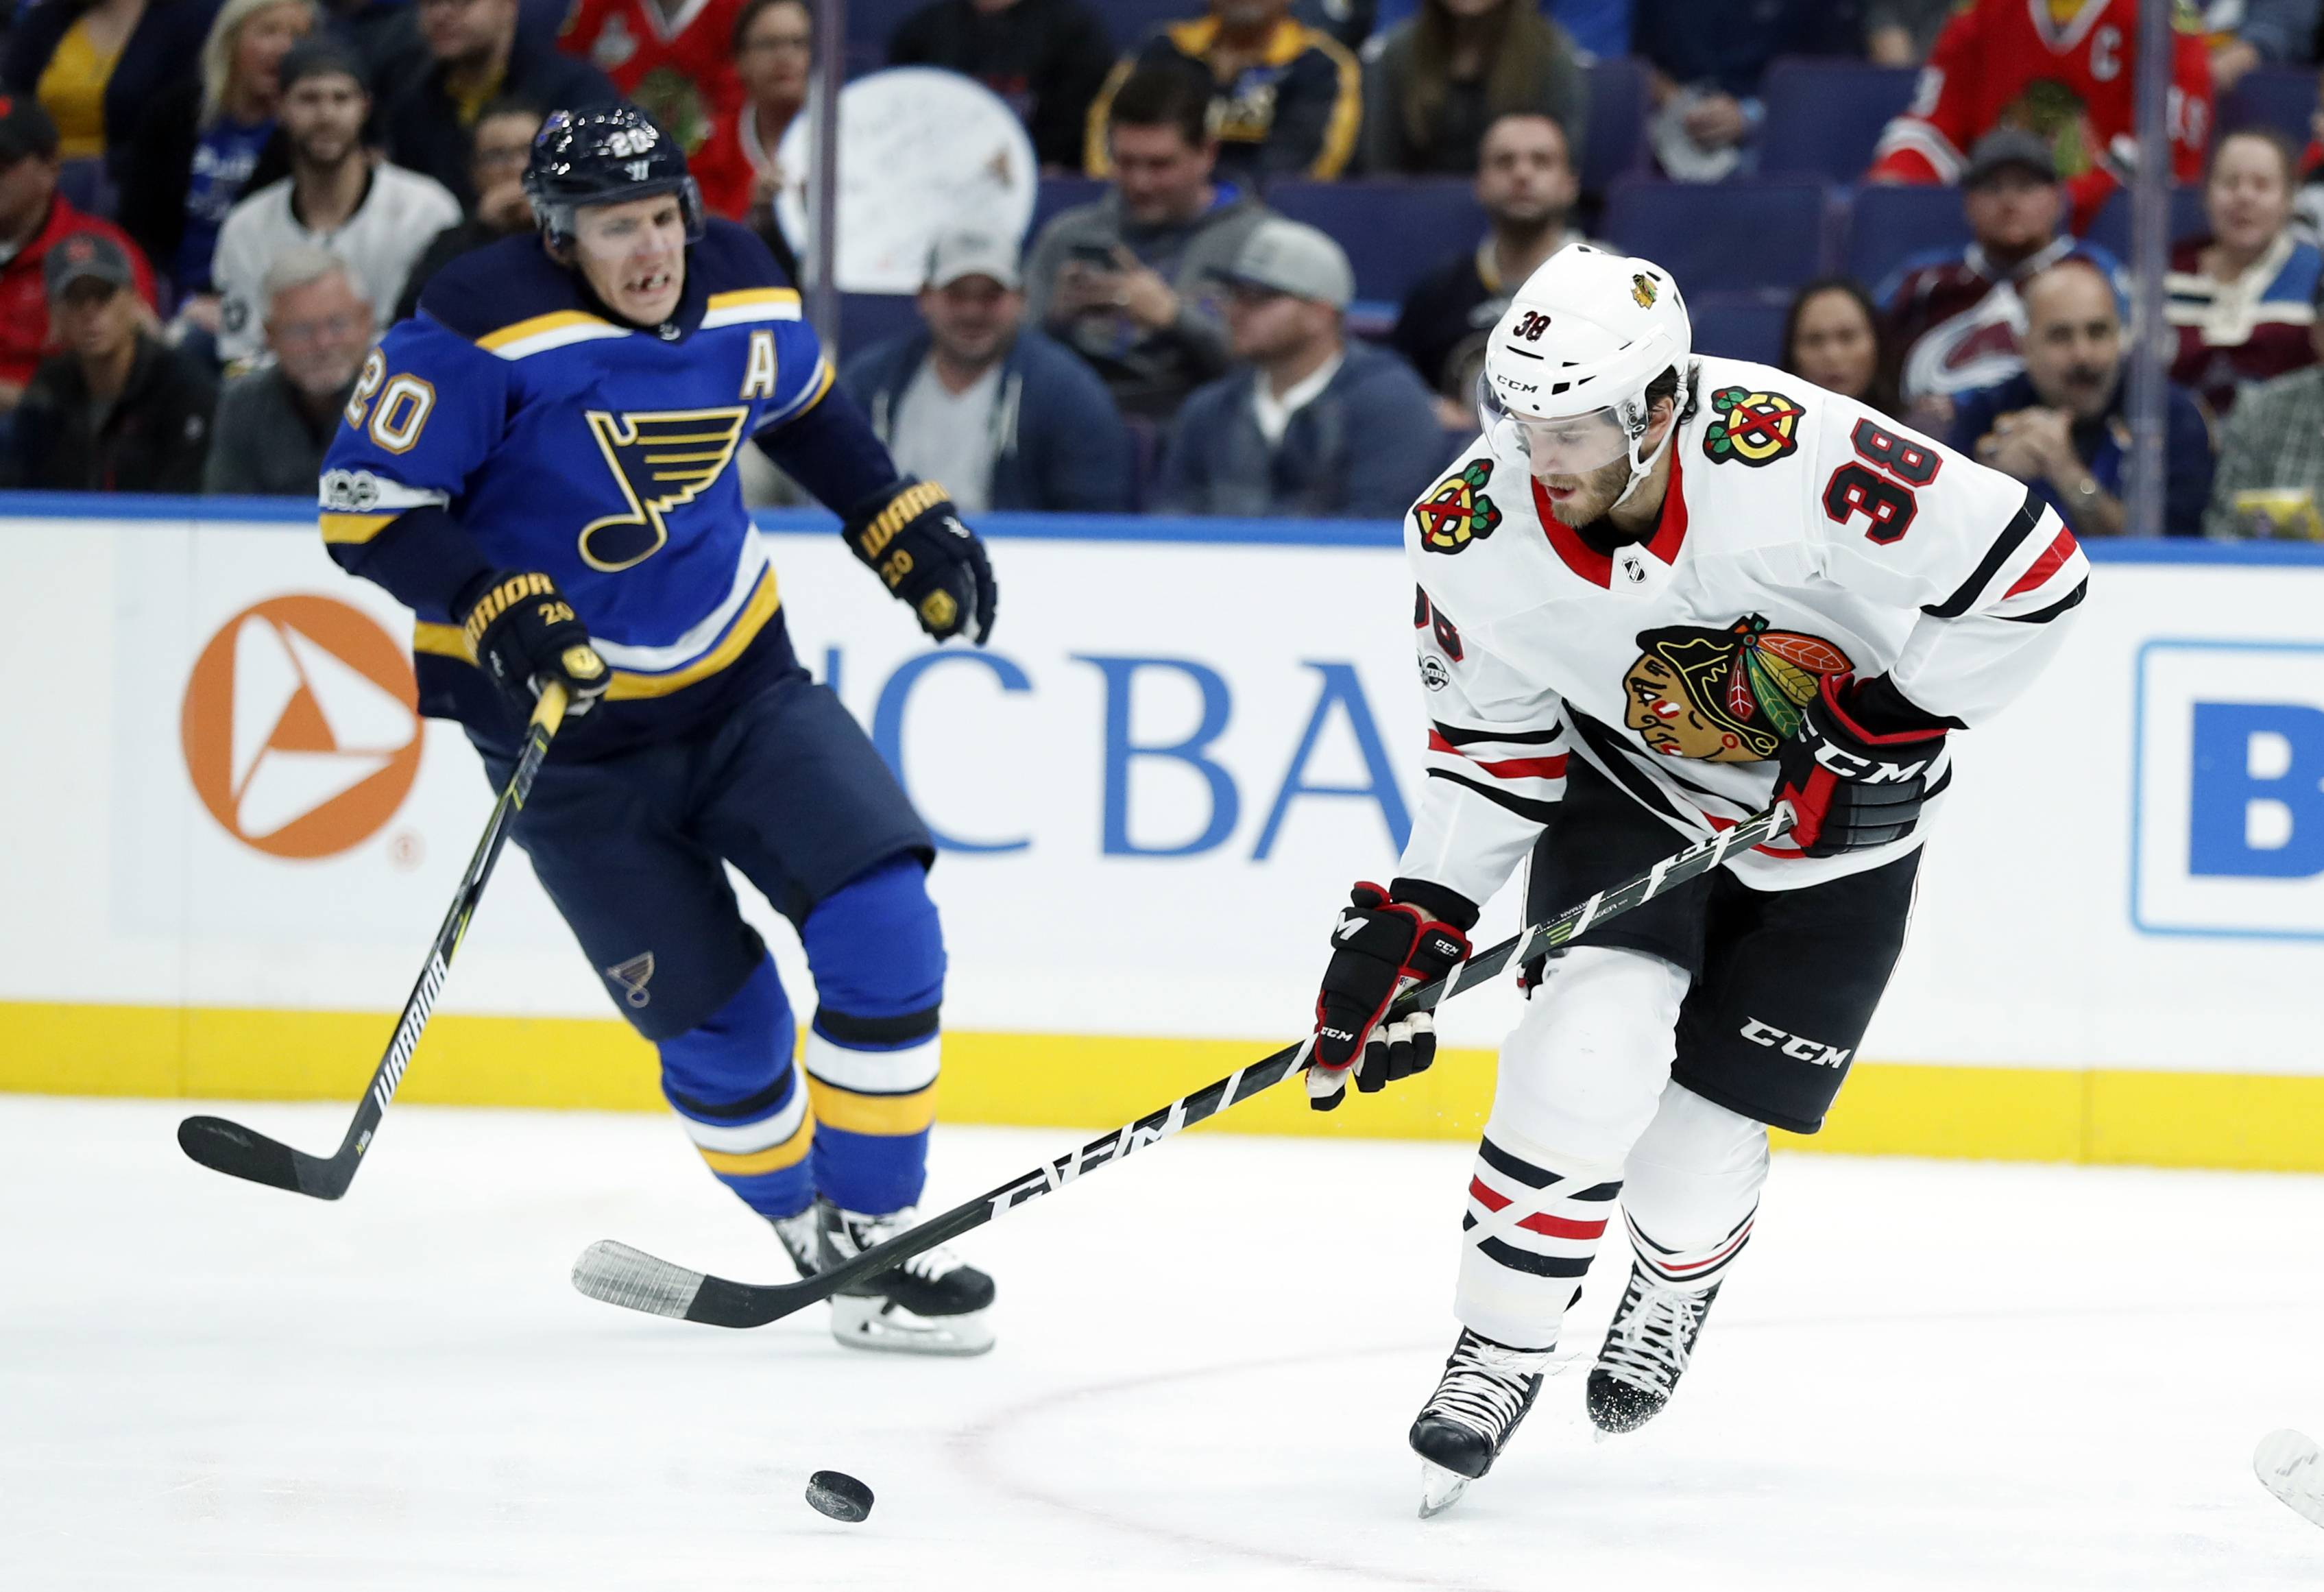 What's been wrong with the Blackhawks the last week? Is it chemistry, a tough schedule or something else? Good question, but coach Joel Quenneville's team better figure things out soon.